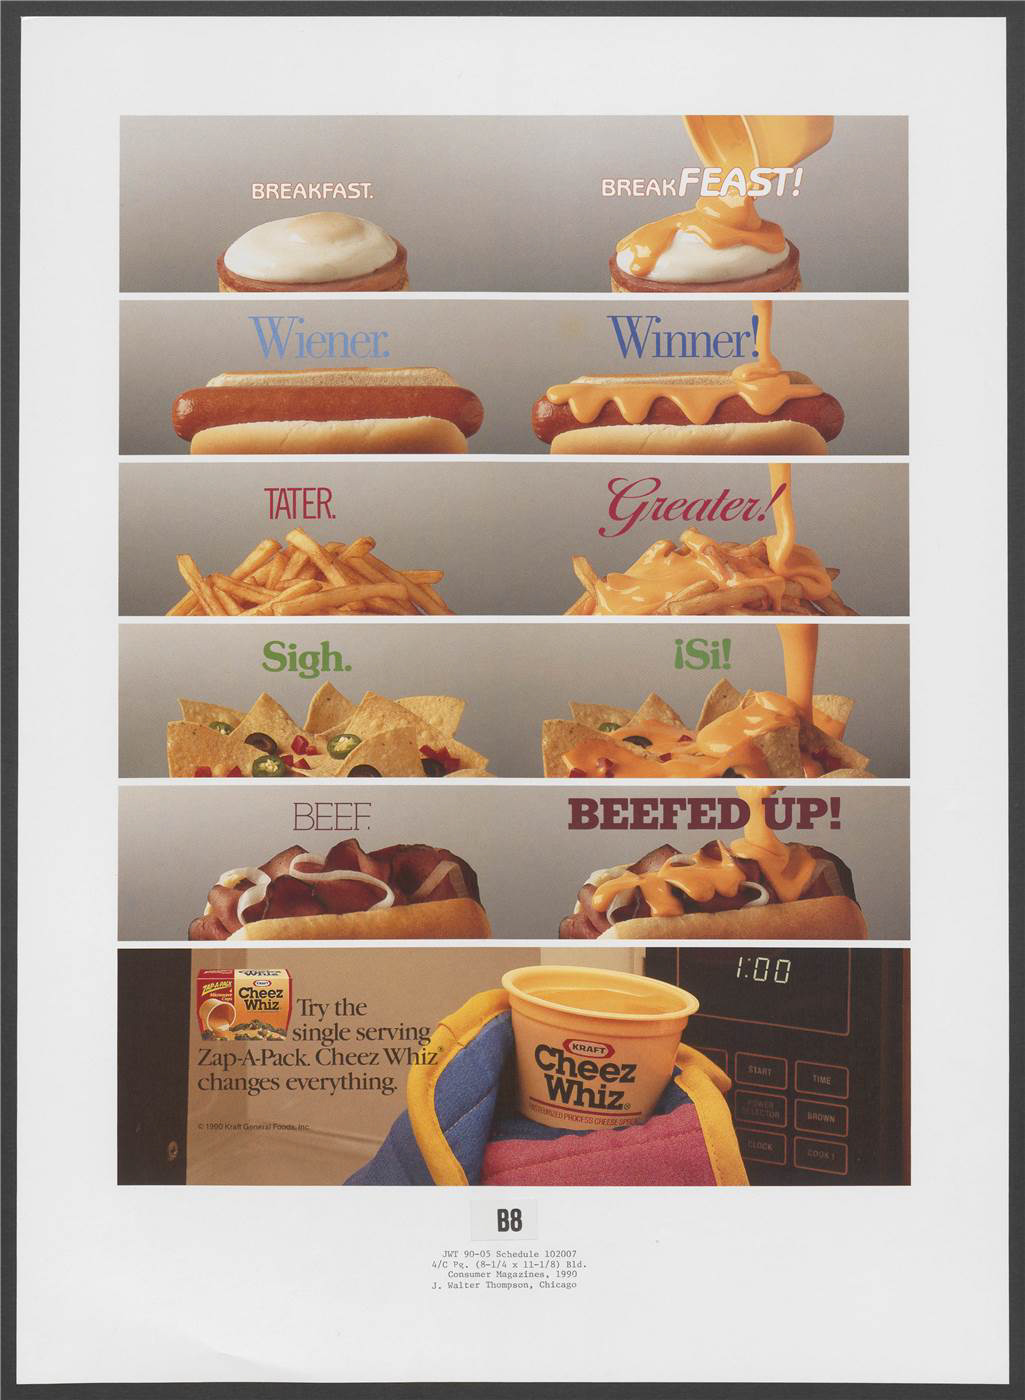 """Breakfast. BreakFEAST!"" Suggests that coating eggs, hot dogs, fries, nachos, and pastrami with heated Cheez Whiz, as illustrated, makes them more attractive propositions. A Cheez Whiz Zap-a-Pack is shown being removed from a microwave oven at the foot of the page, along with an example of its packaging."